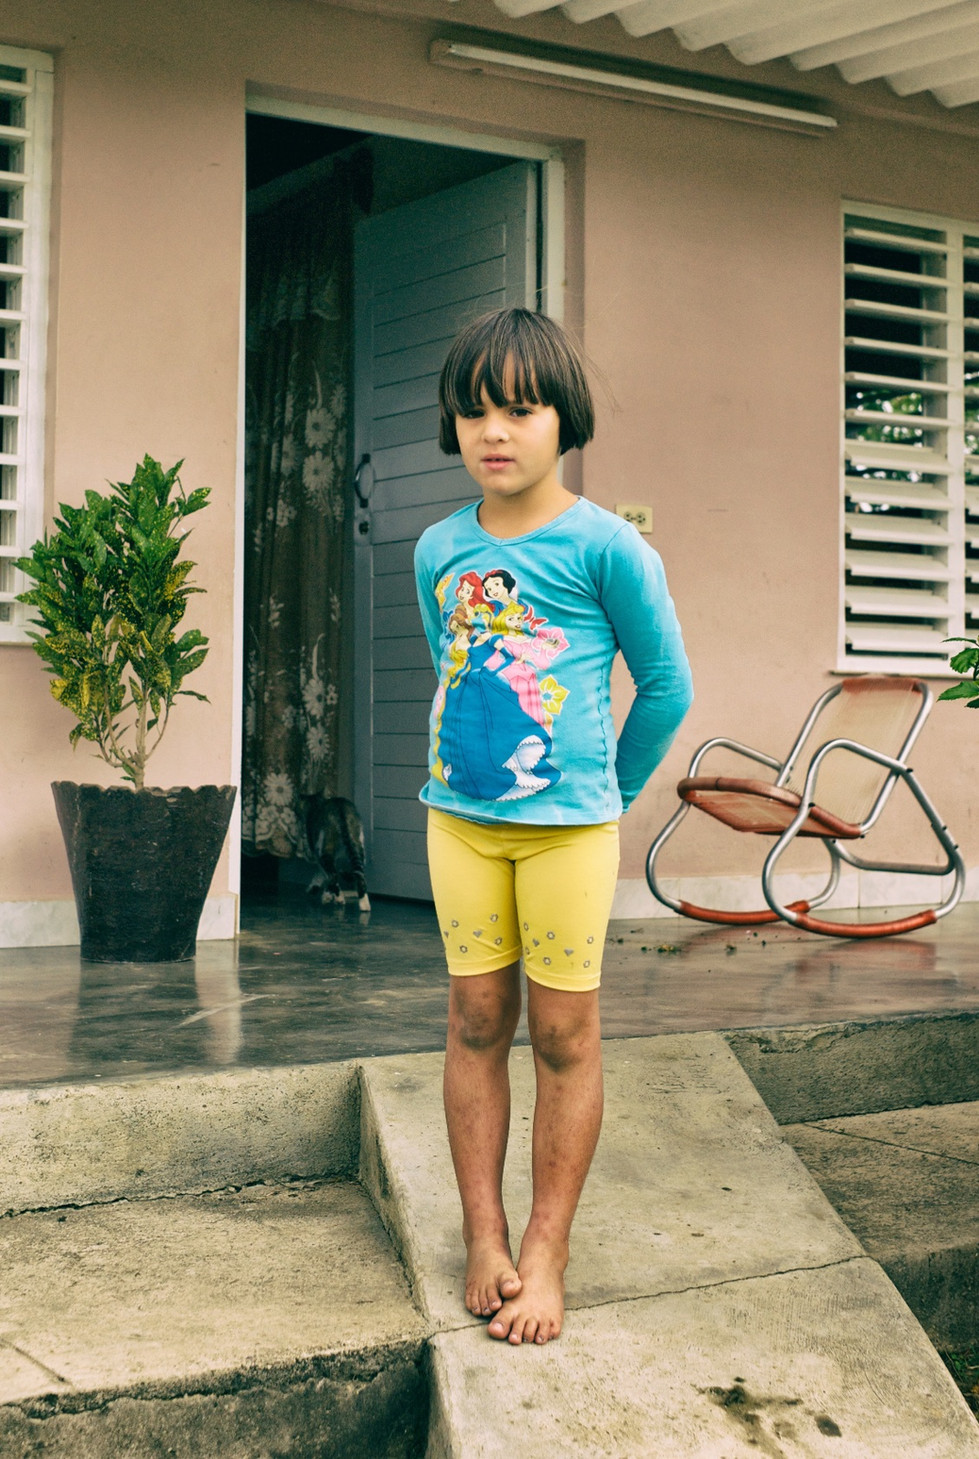 Child with muddy knees, Cuba